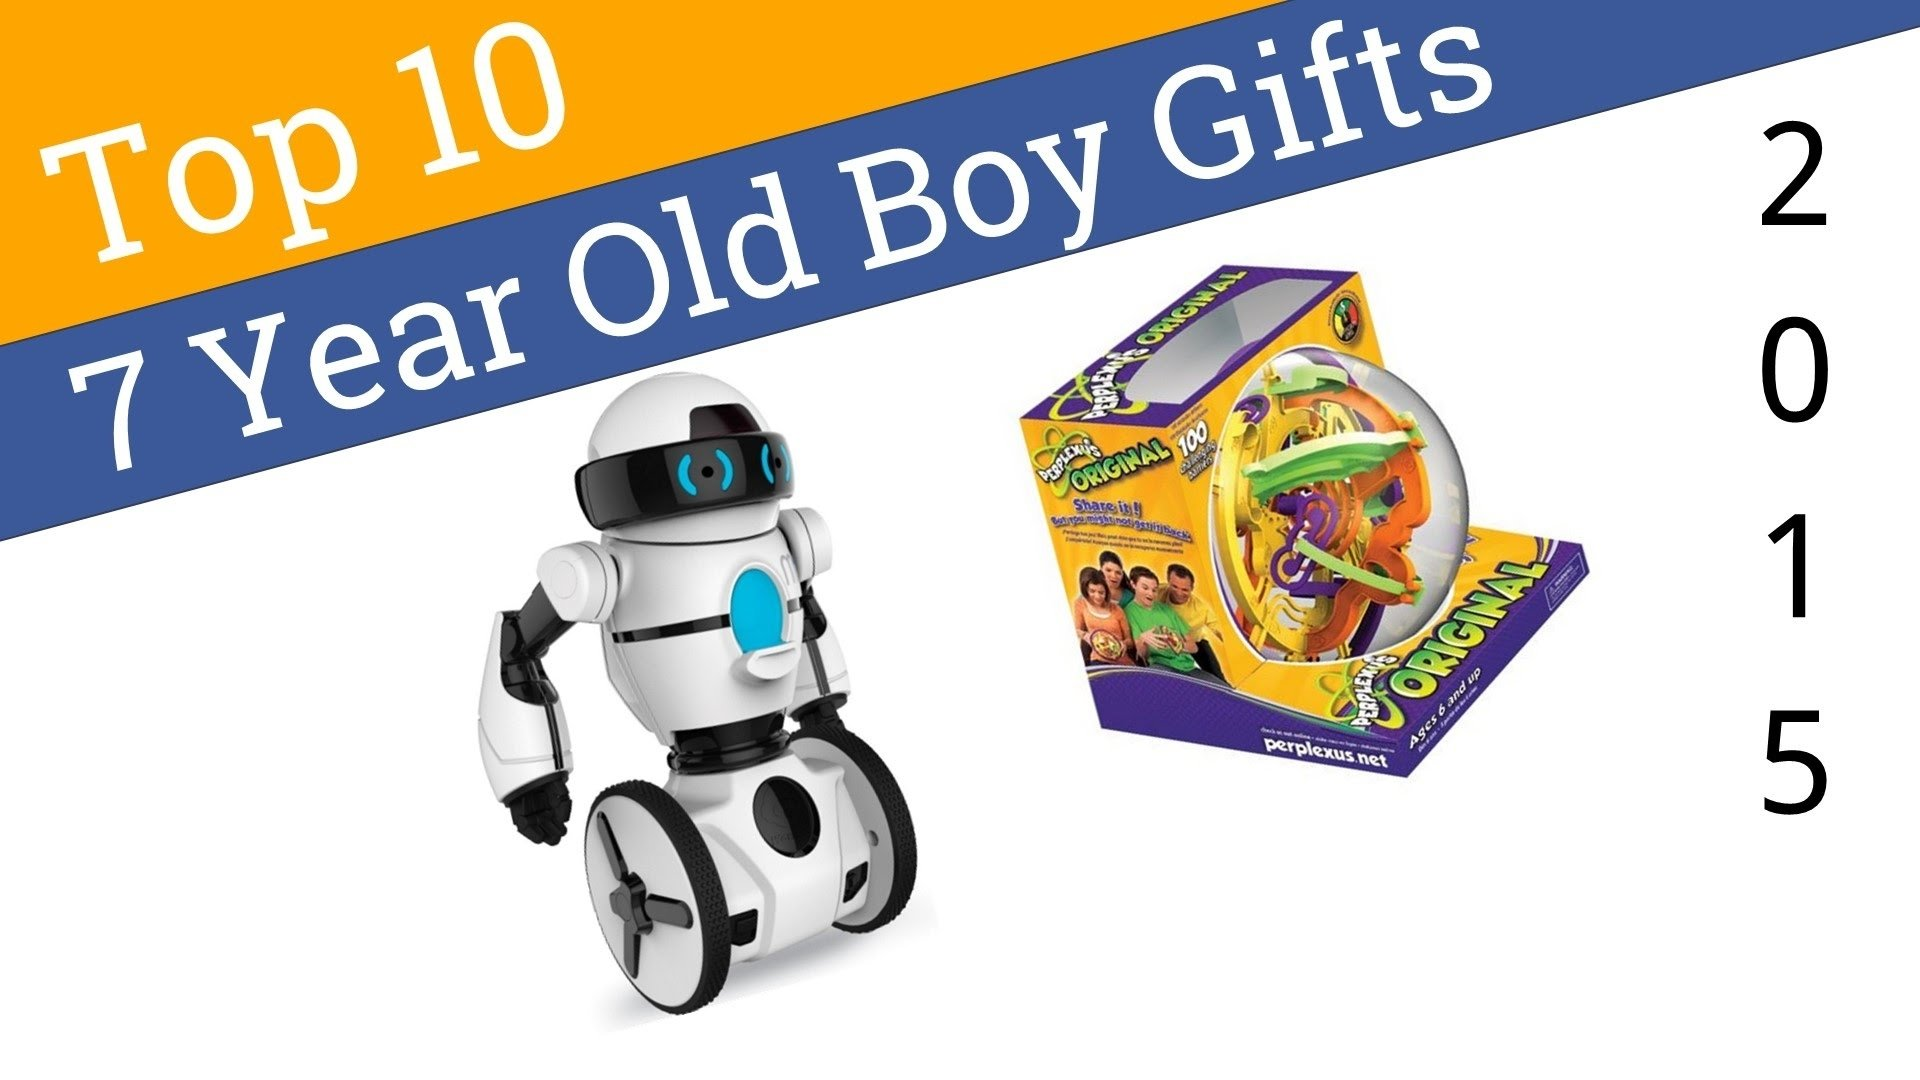 10 Most Popular 6 Year Old Boy Birthday Gift Ideas 10 best 7 year old boy gifts 2015 youtube 2